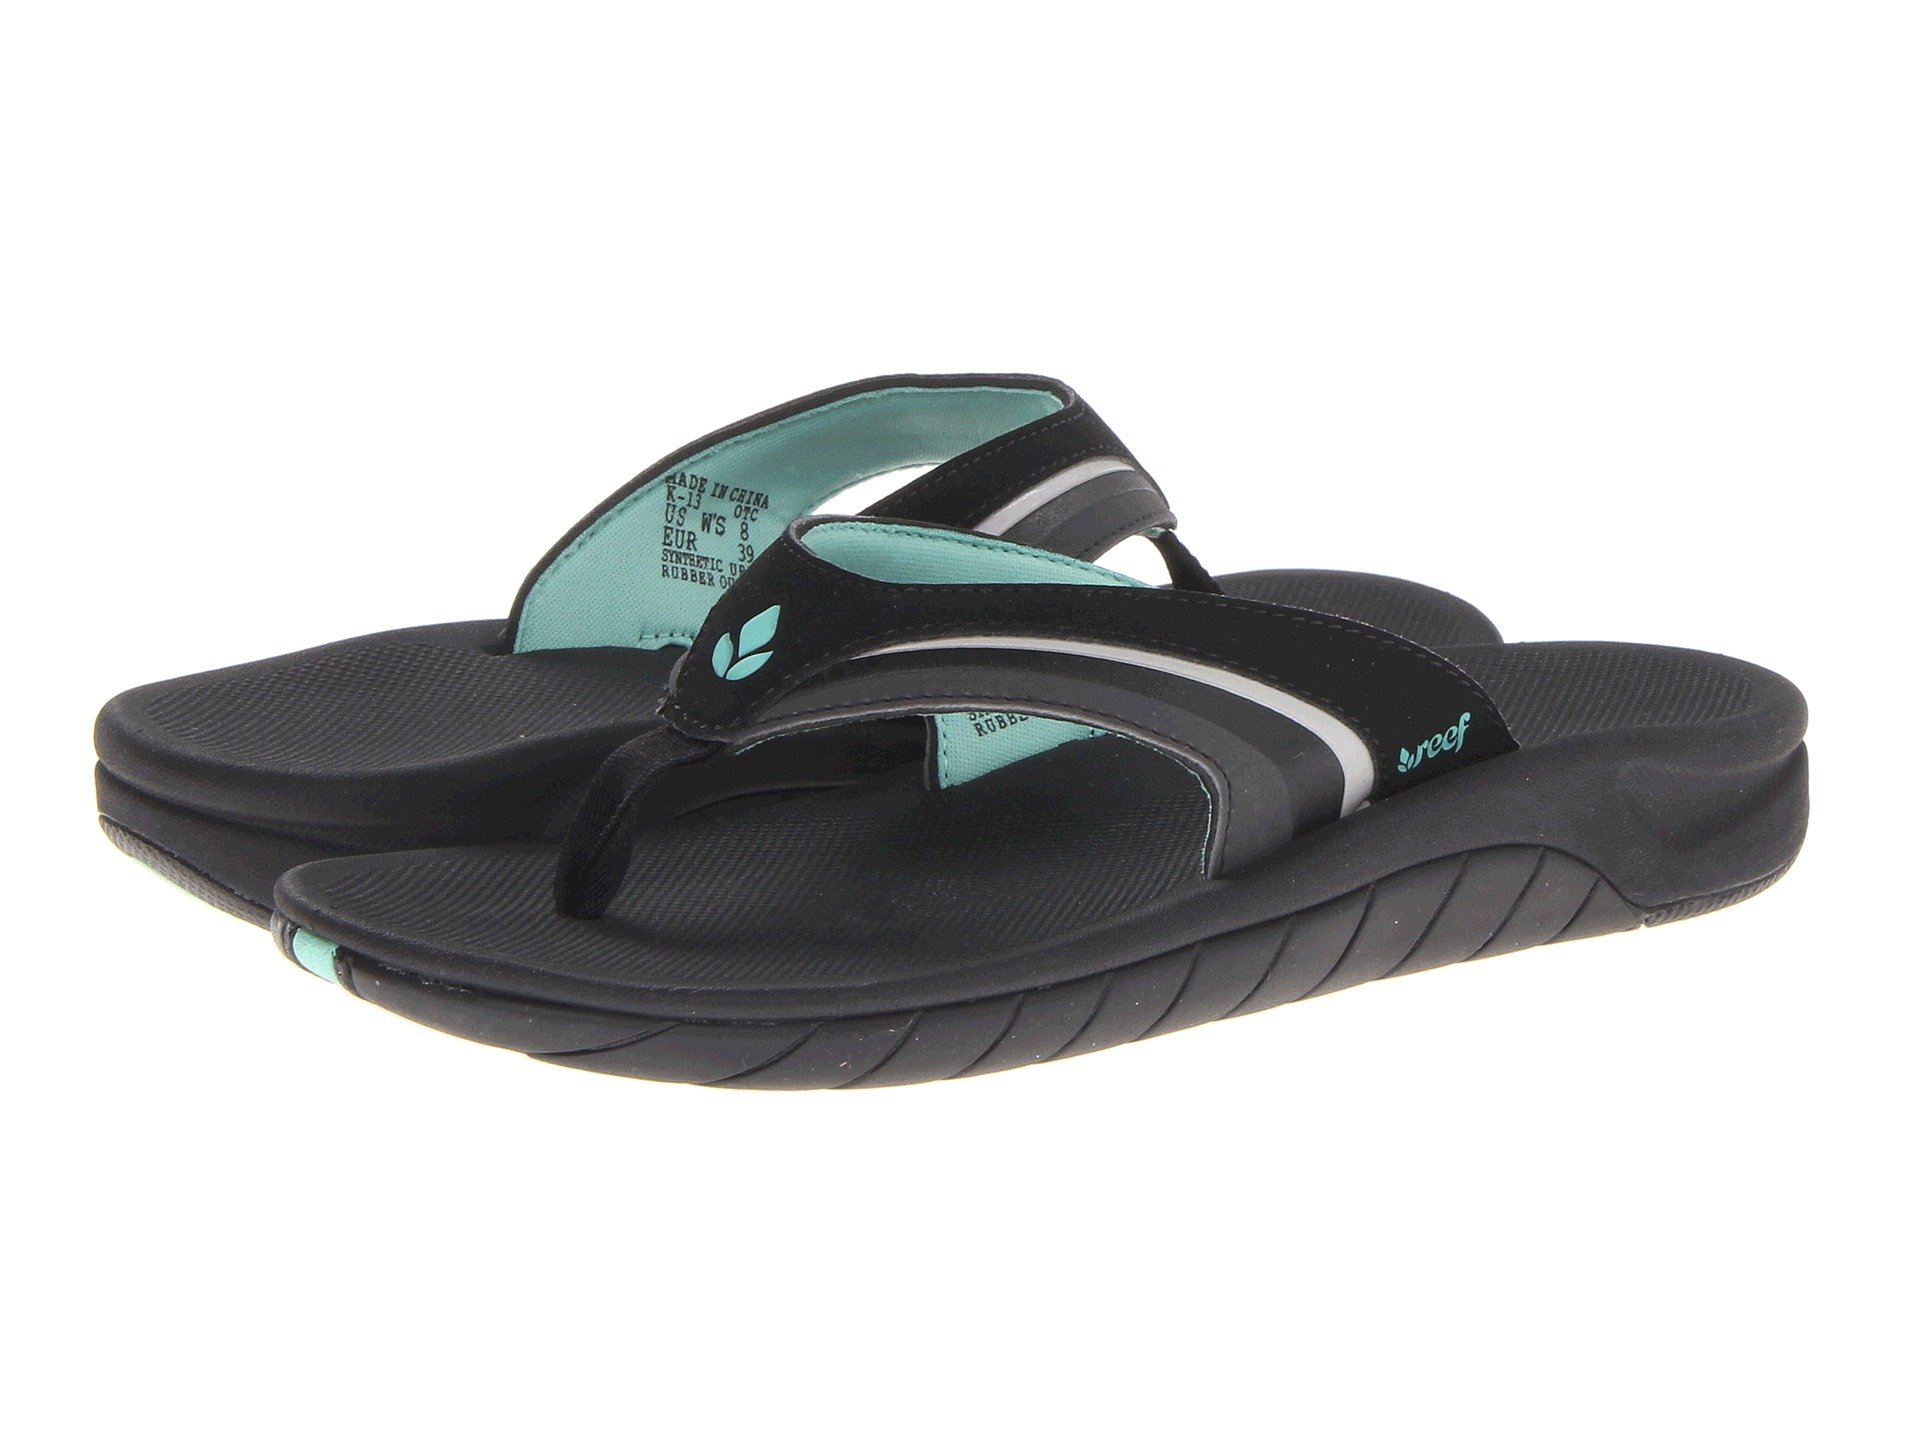 e301e9266697 Get Quotations · Reef Women s Slap 3 Sandal